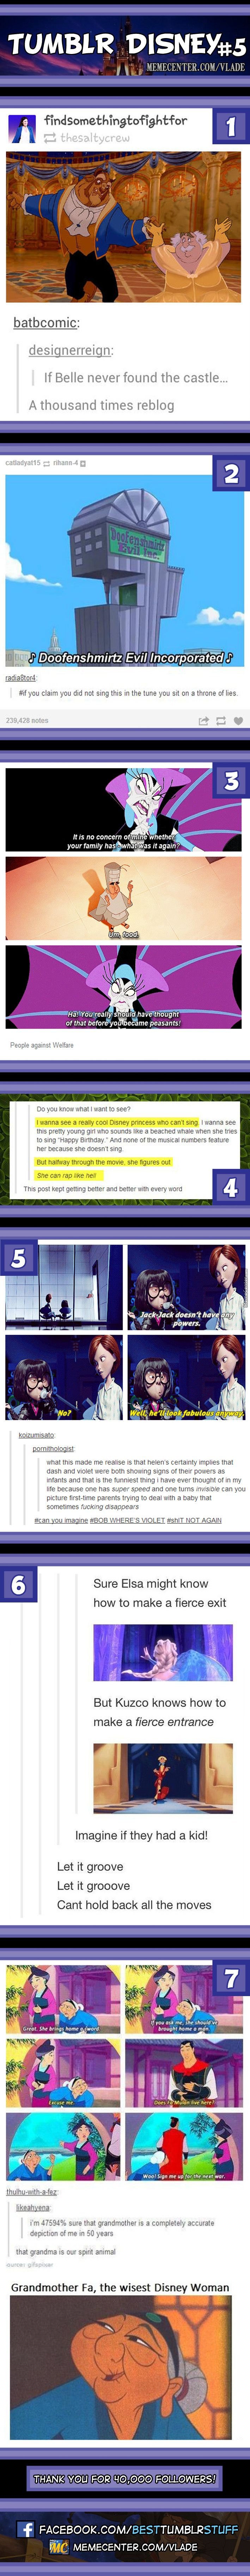 Tumblr Disney #5 love the last one! i am definitely going to become Mulan's grandmother when I'm old!